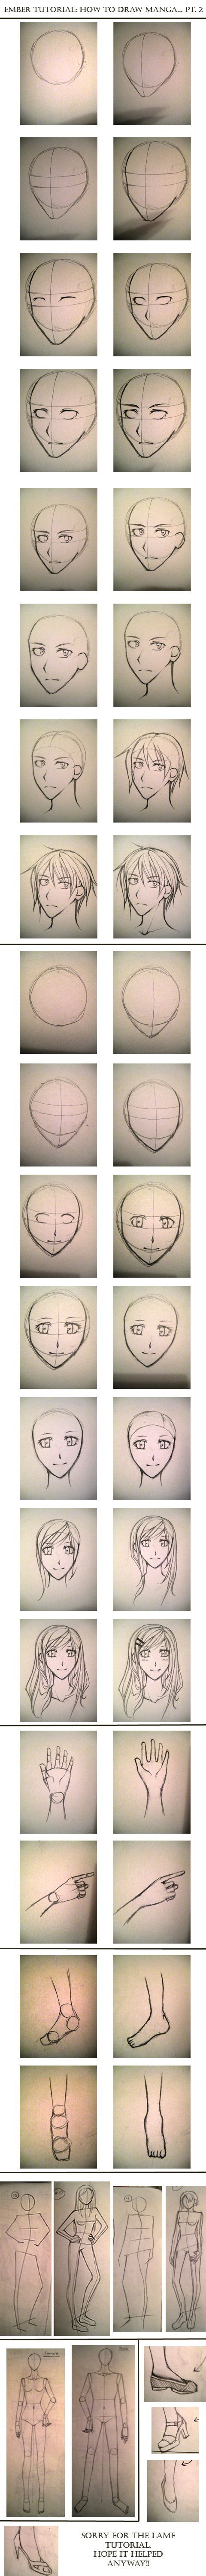 how to draw a basic anime girl and anime guy tutorial.